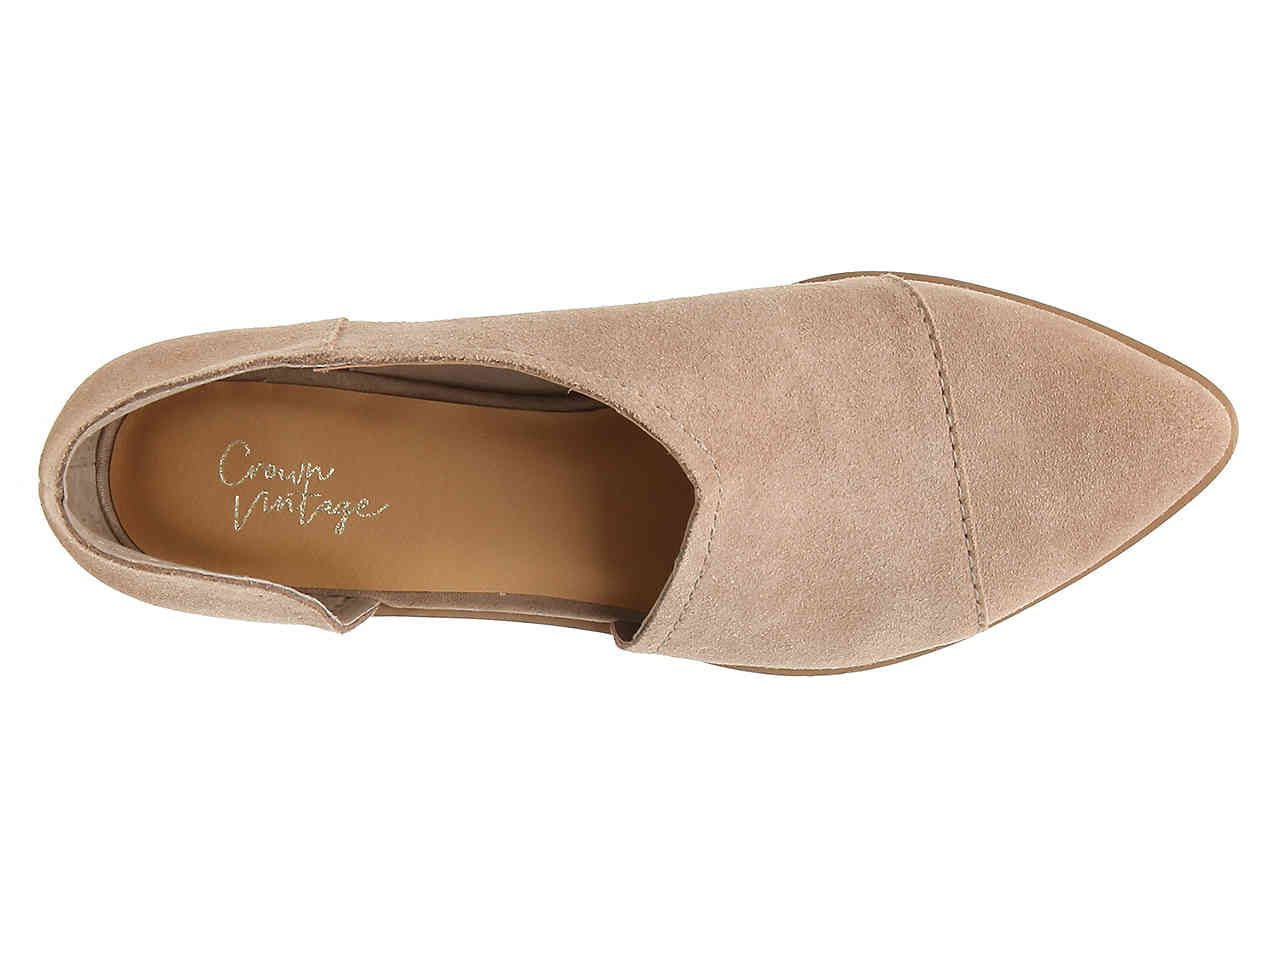 cd33c8ce32c5 Crown Vintage Shay Flat Women's Shoes | DSW | shoes in 2019 | Shoes ...